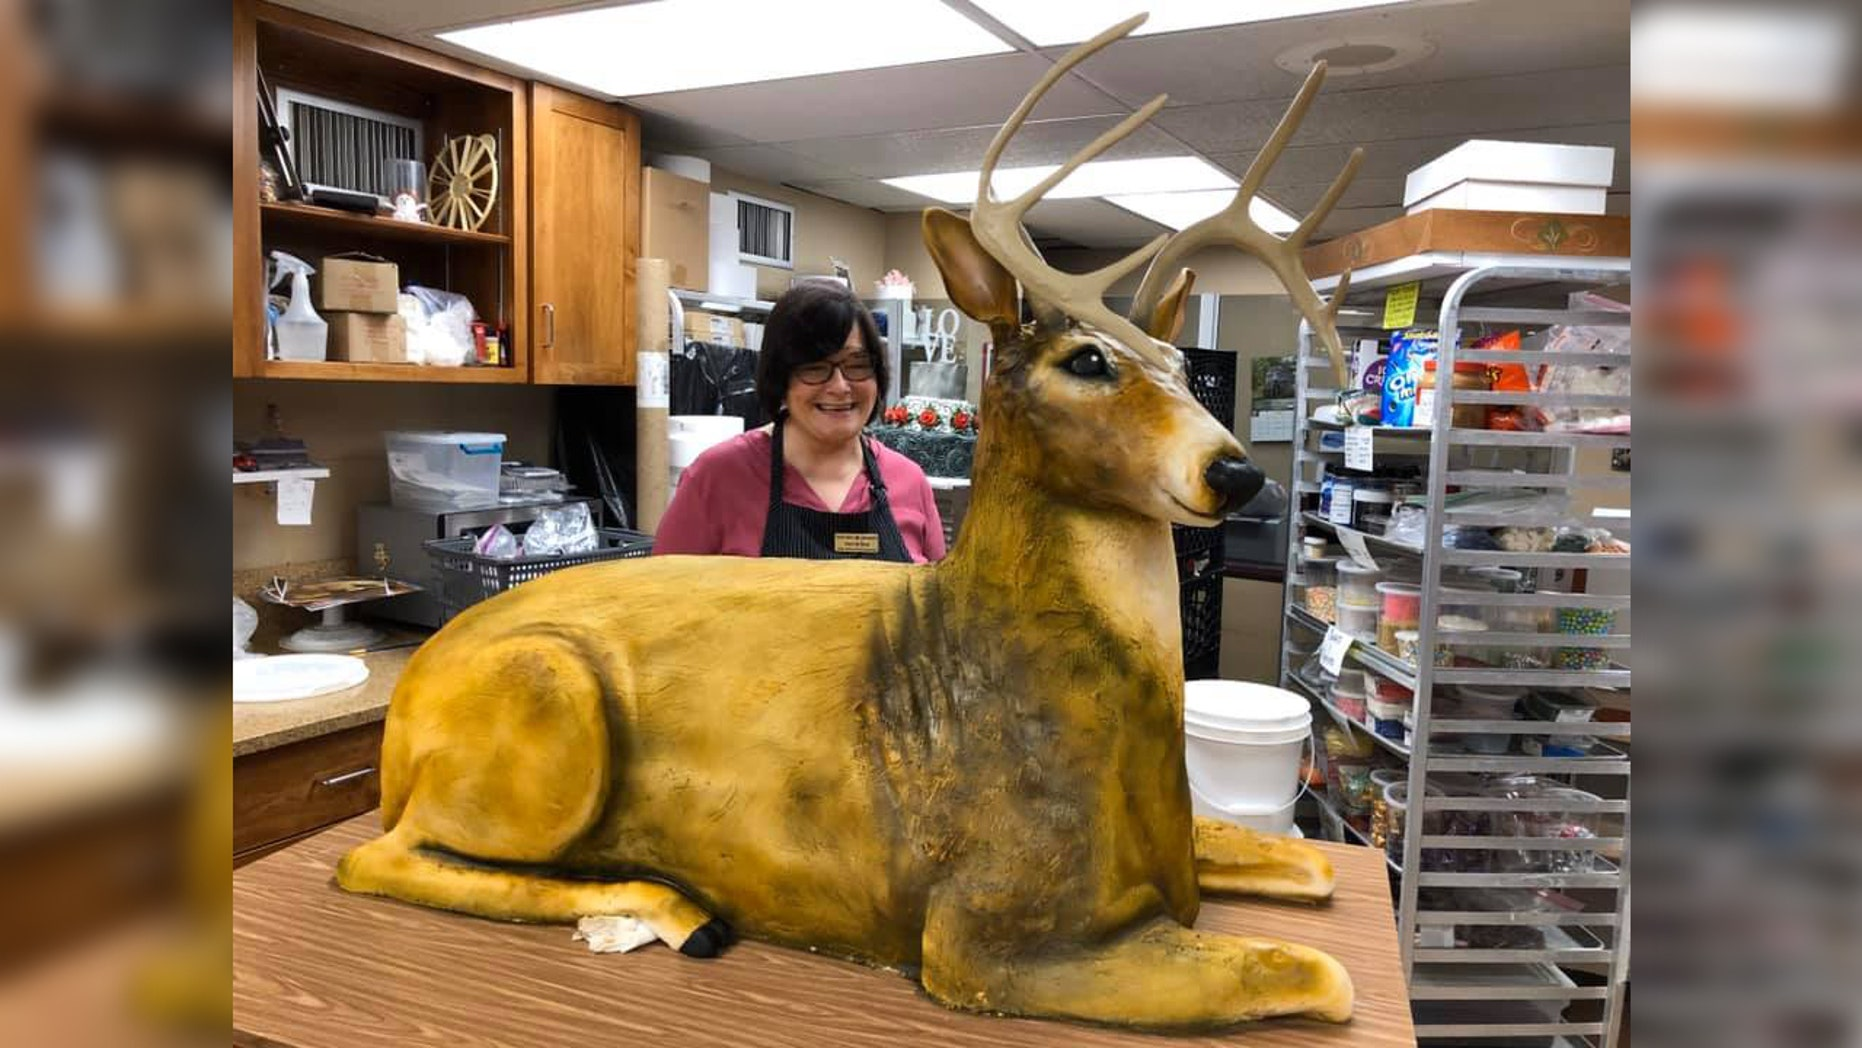 A bakery in East Earl, Pa., recently crafted a life-size, deer-shaped wedding cake for a couple who married last Saturday.